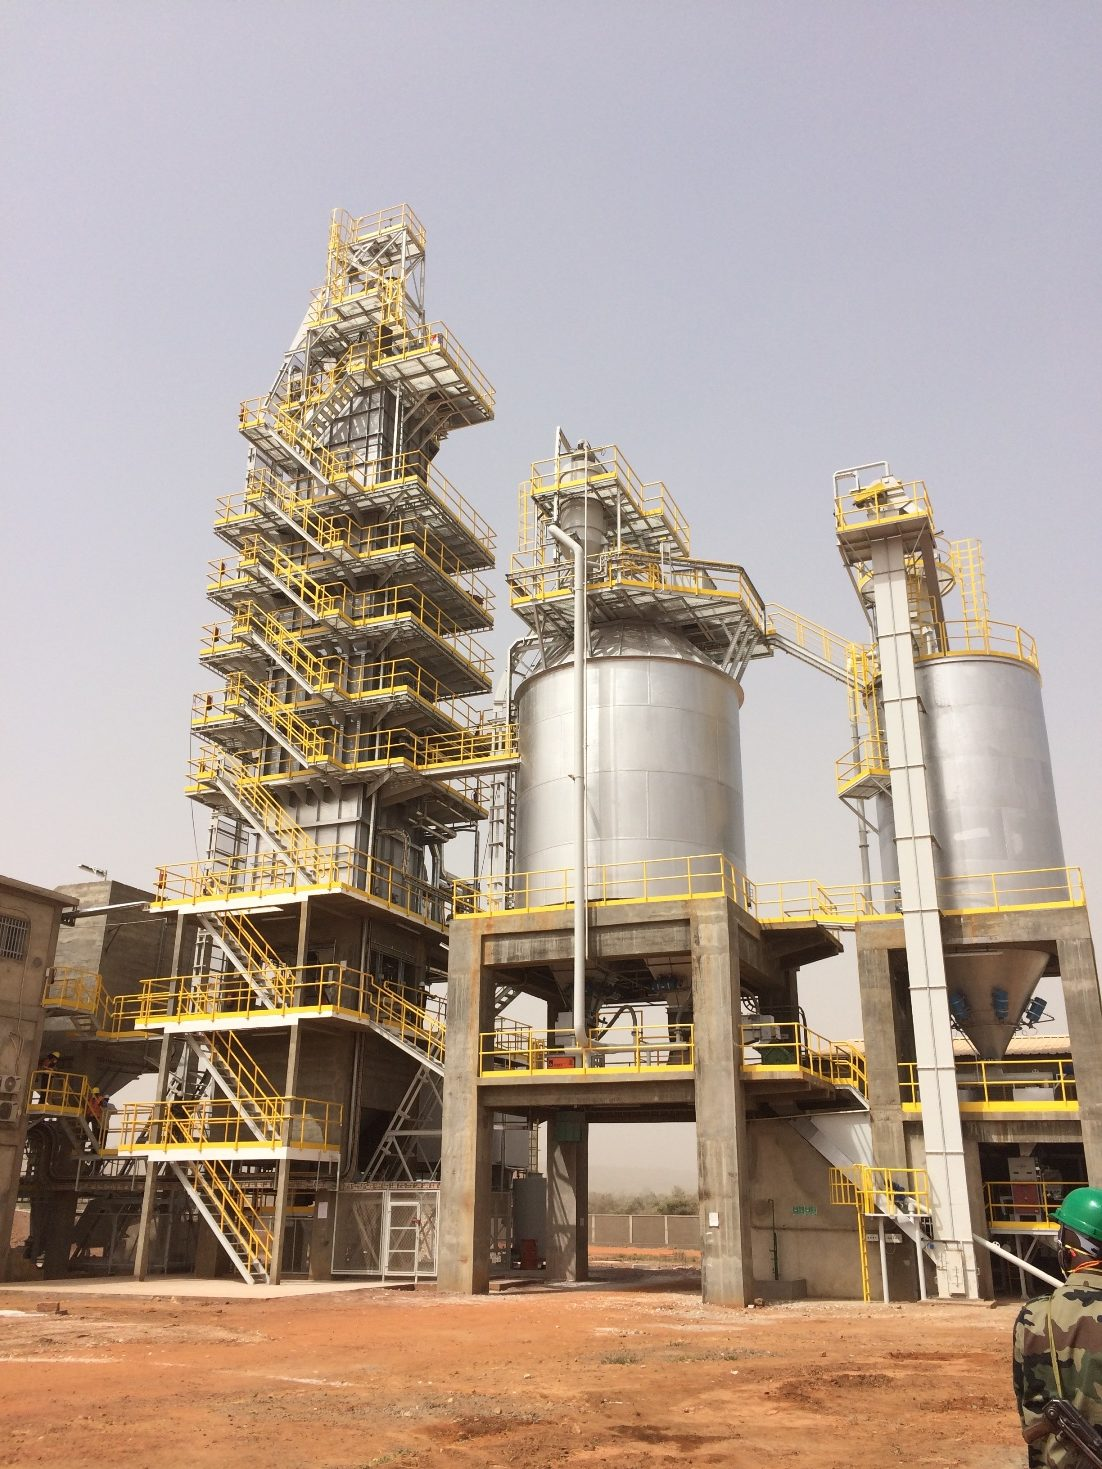 Mali Industrial Processing